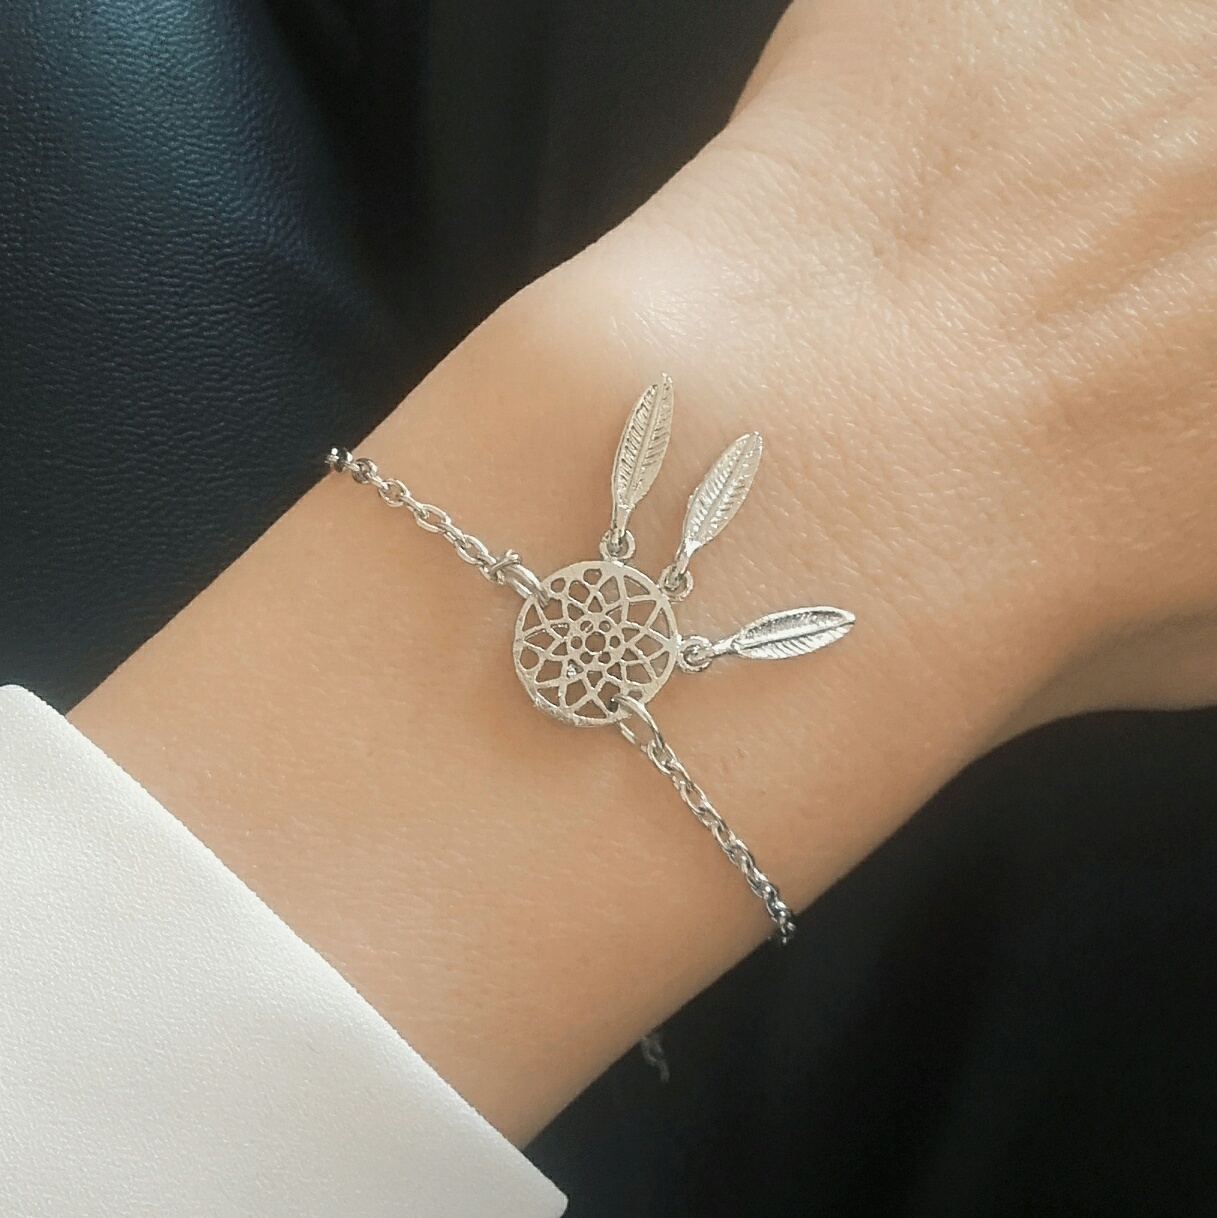 tatouage bracelet poignet dream